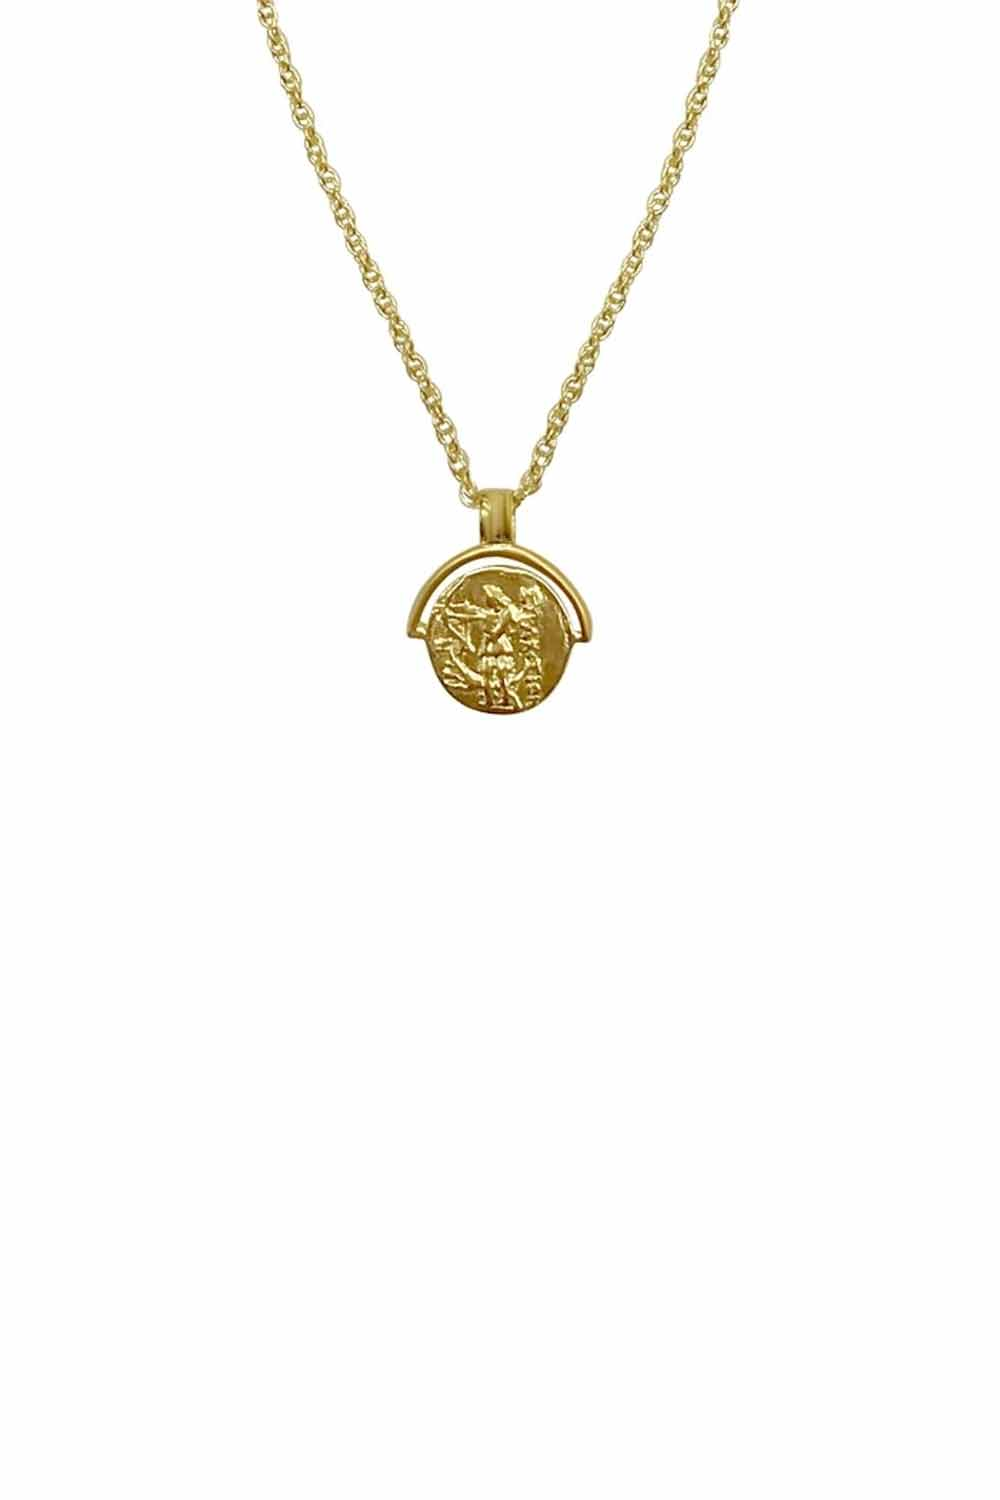 Bonito Jewelry ~ Artemis Coin Necklace in Gold